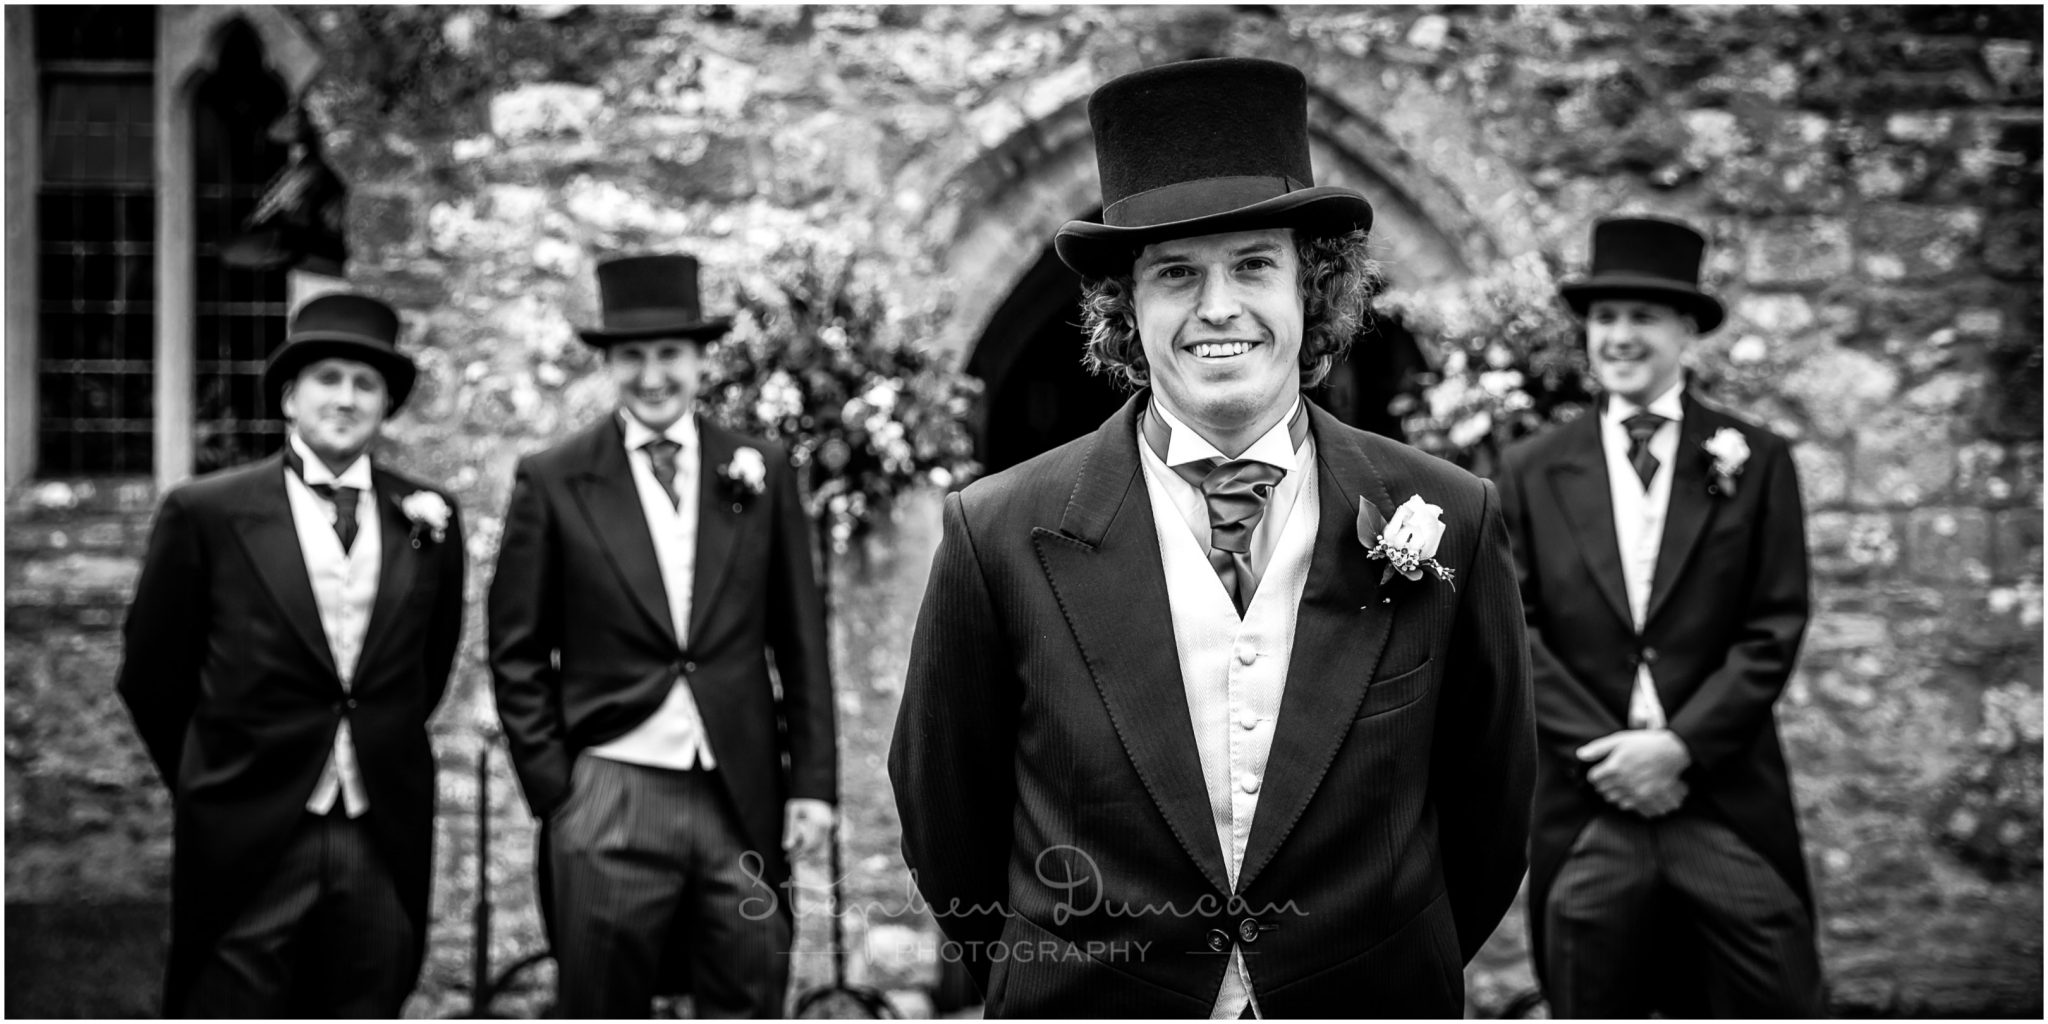 Lymington wedding photography black and white groom portrait with groomsmen